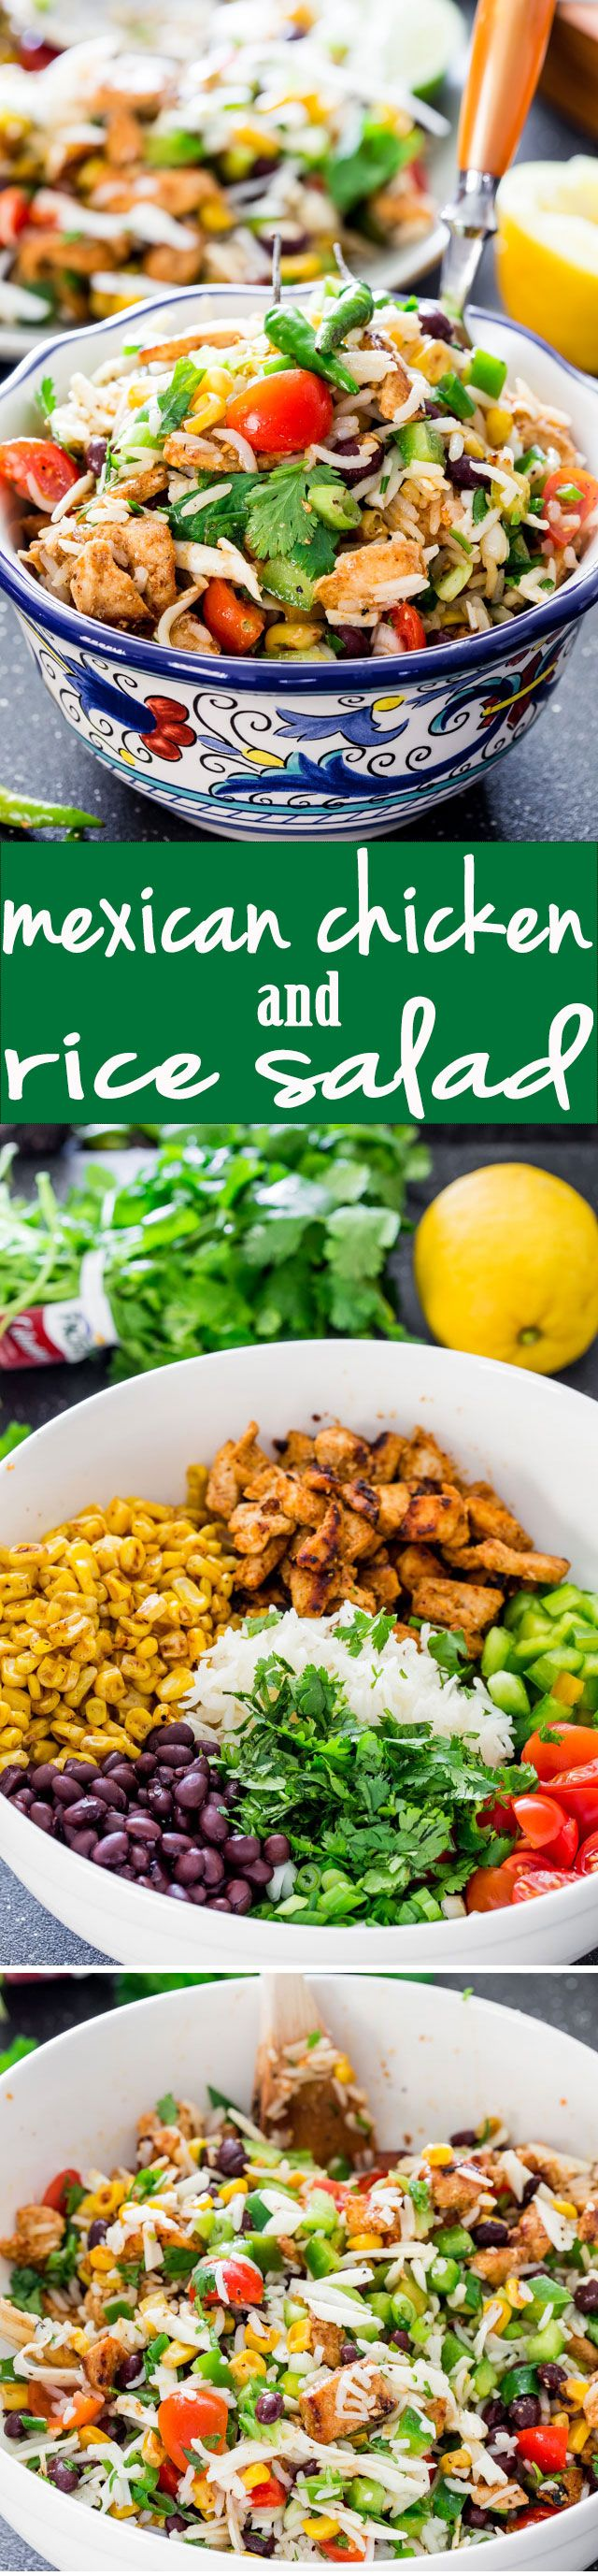 Mexican Chicken and Rice Salad - a fresh summer salad loaded with black beans, chicken, corn and rice. Top it all off with your favorite graze snack for an extra crunch!